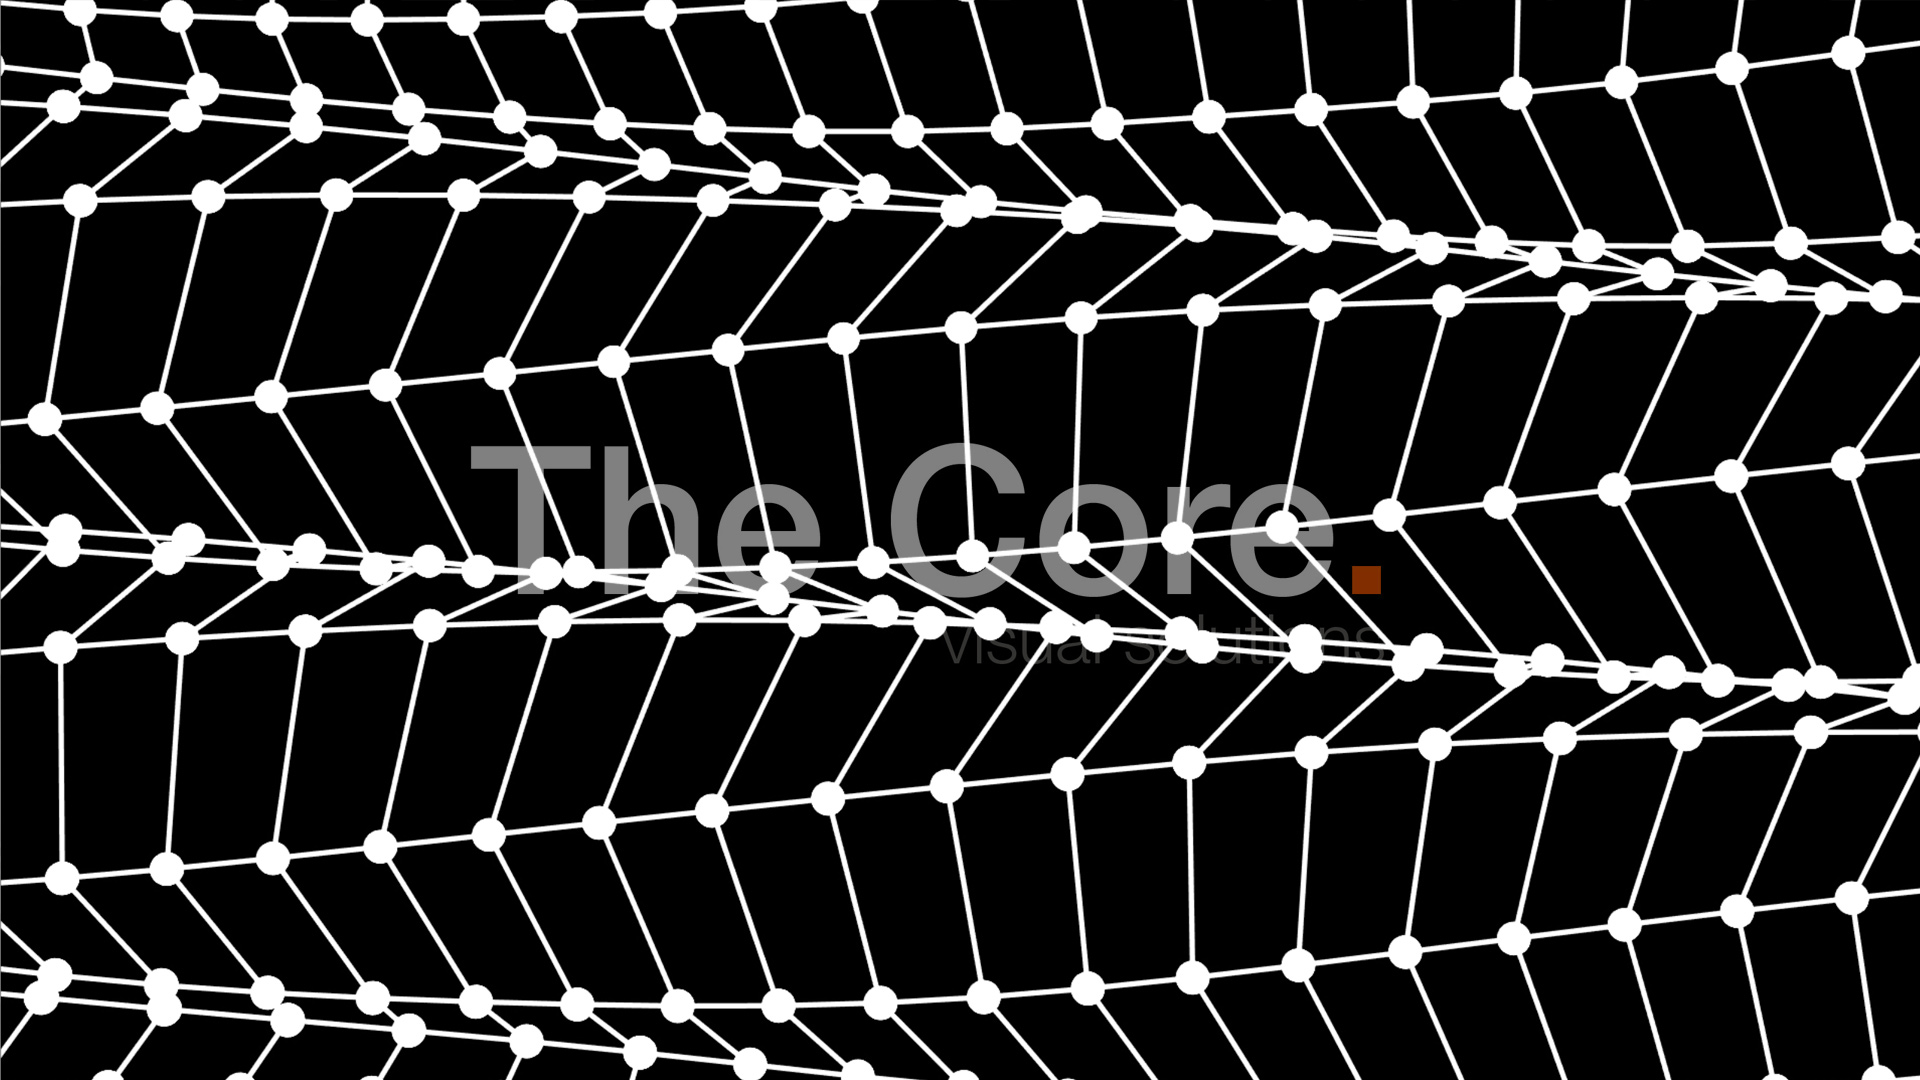 00056-WIRE-GRID-BUILD-DOWN-1-STILL